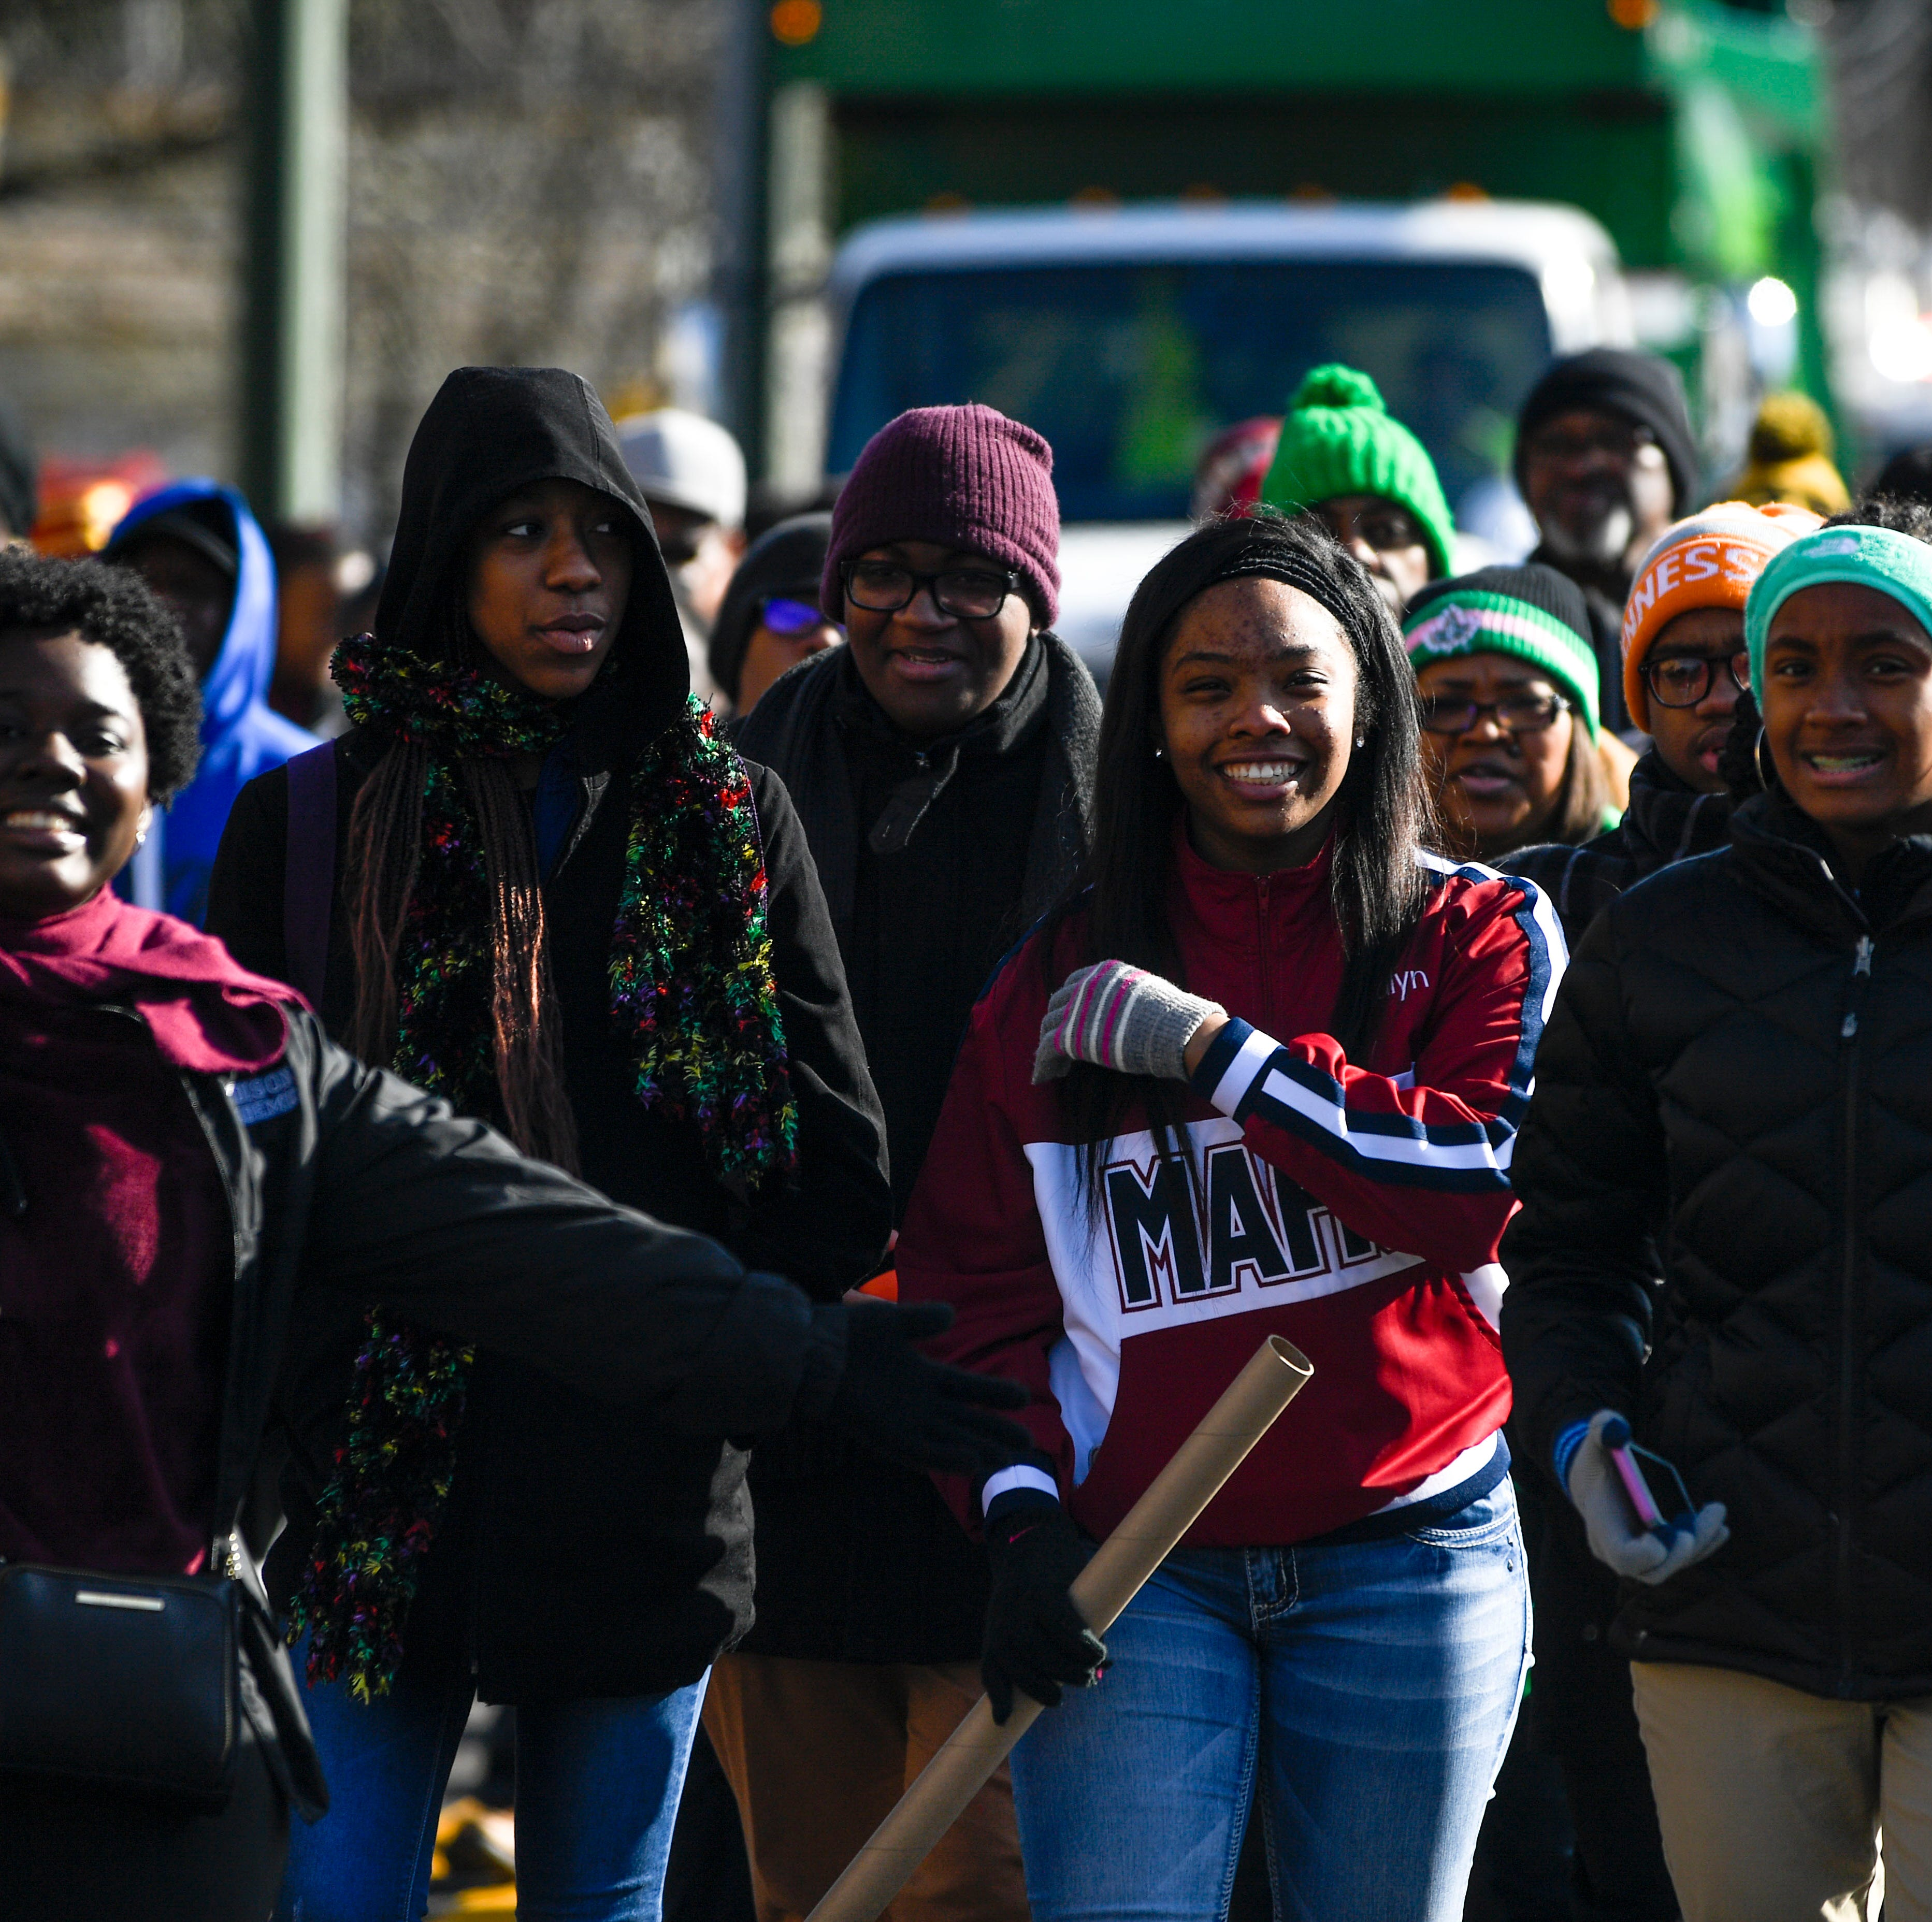 Group marches to remember and carry on MLK's legacy on Martin Luther King Day in Jackson